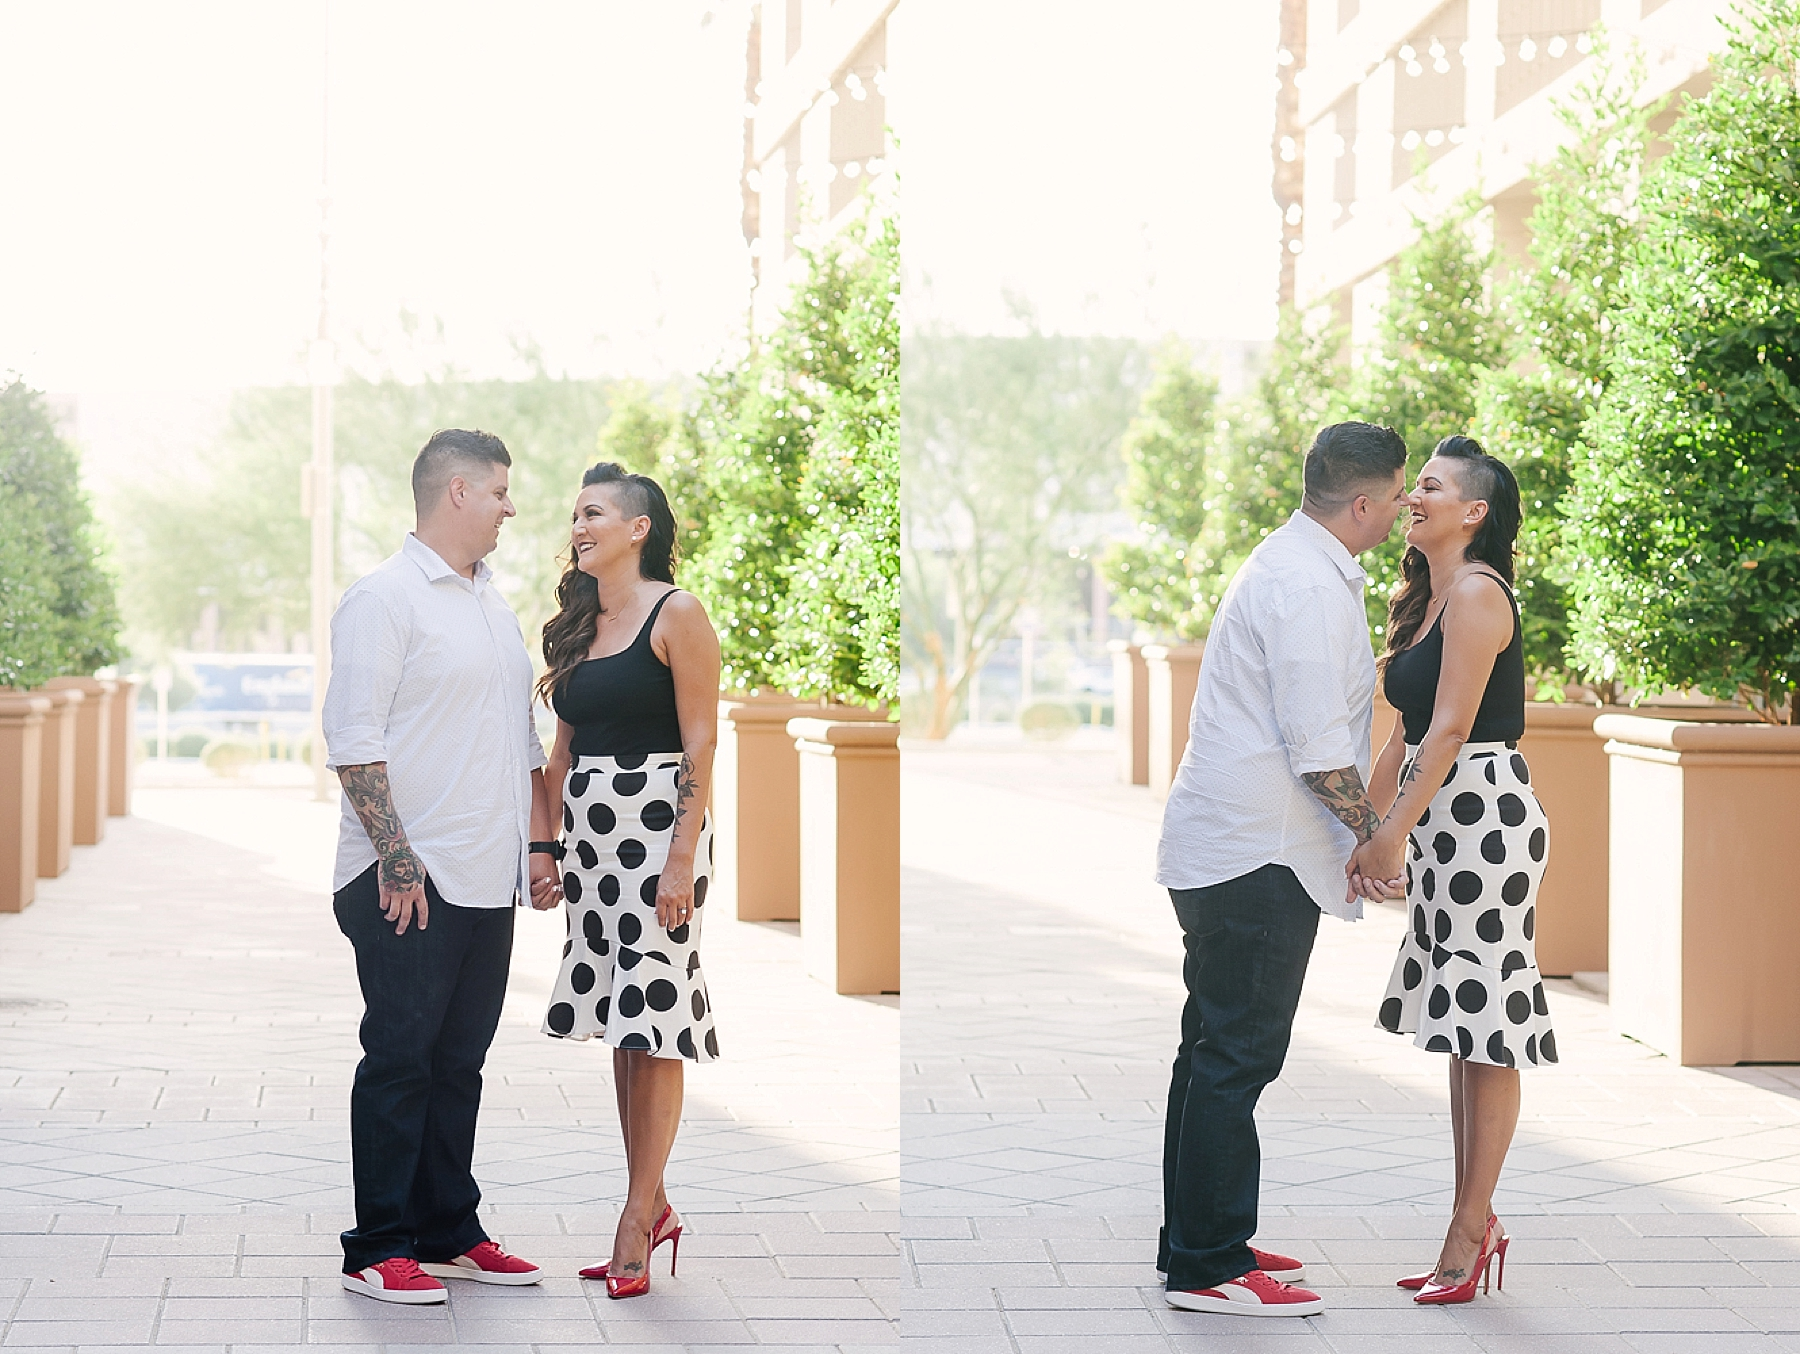 Neon_Museum_Las_vegas_downtown_engagement_photos-01.jpg